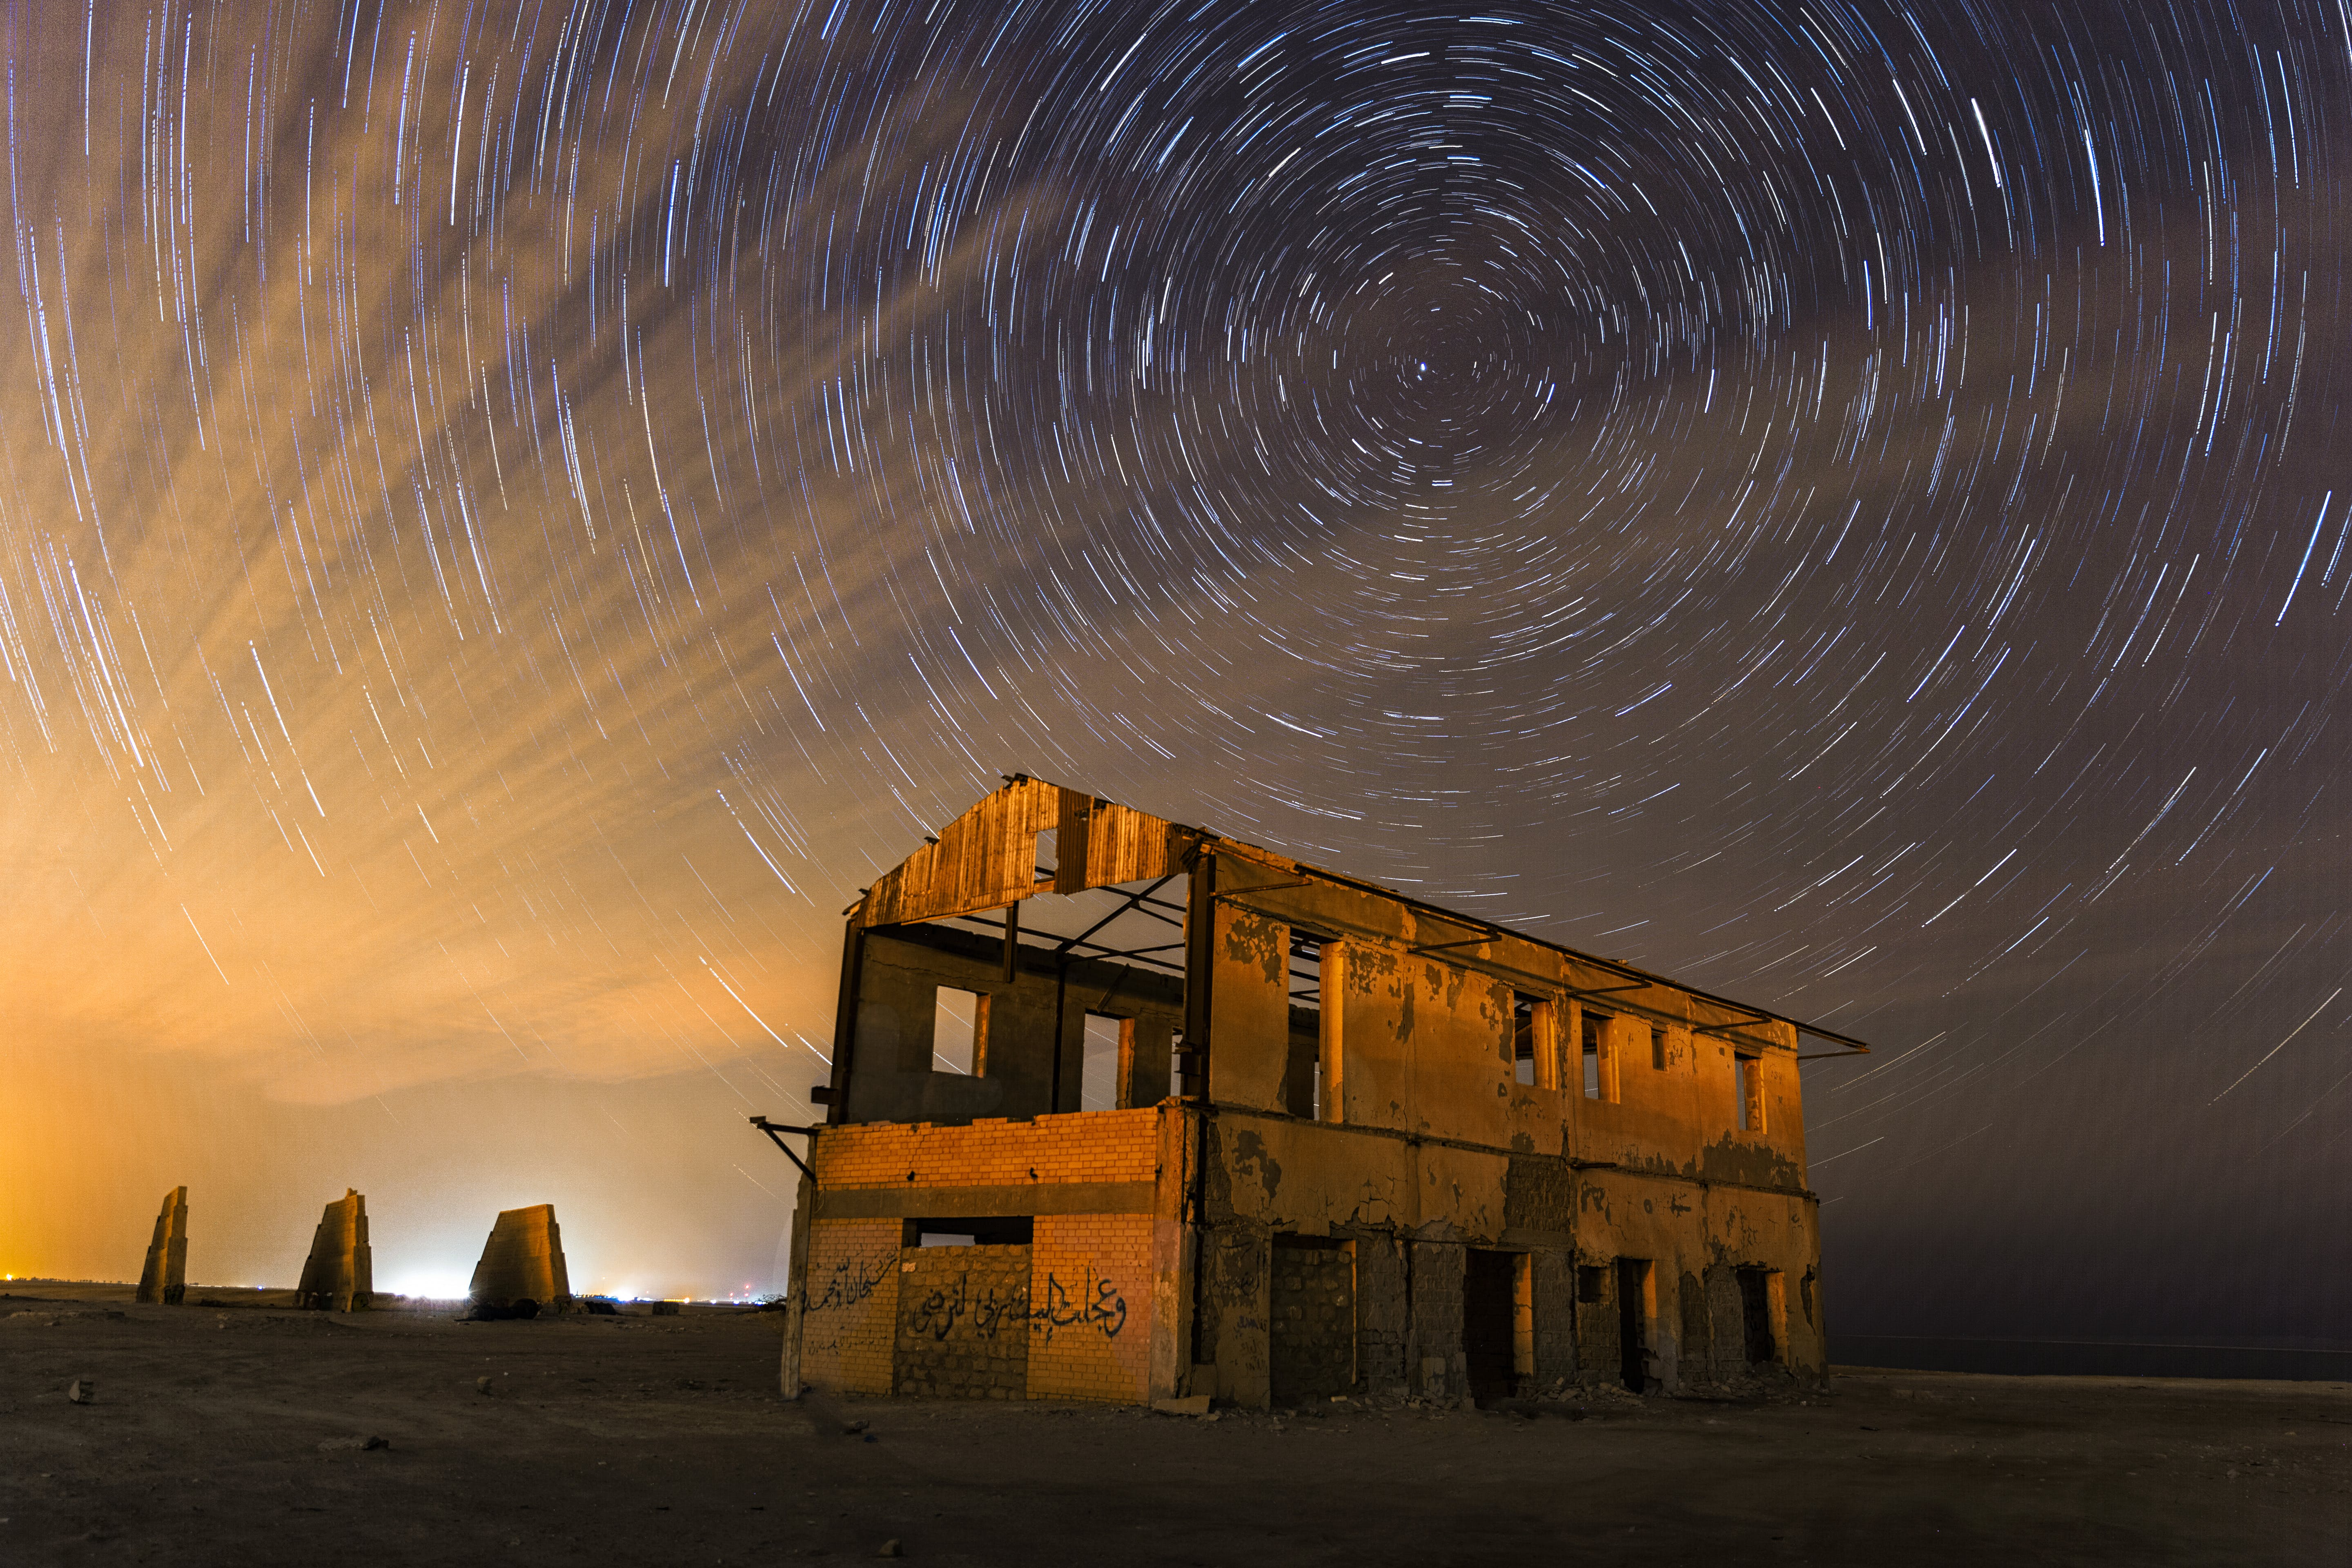 Time-lapse Photography of Grey and Brown Abandoned Building